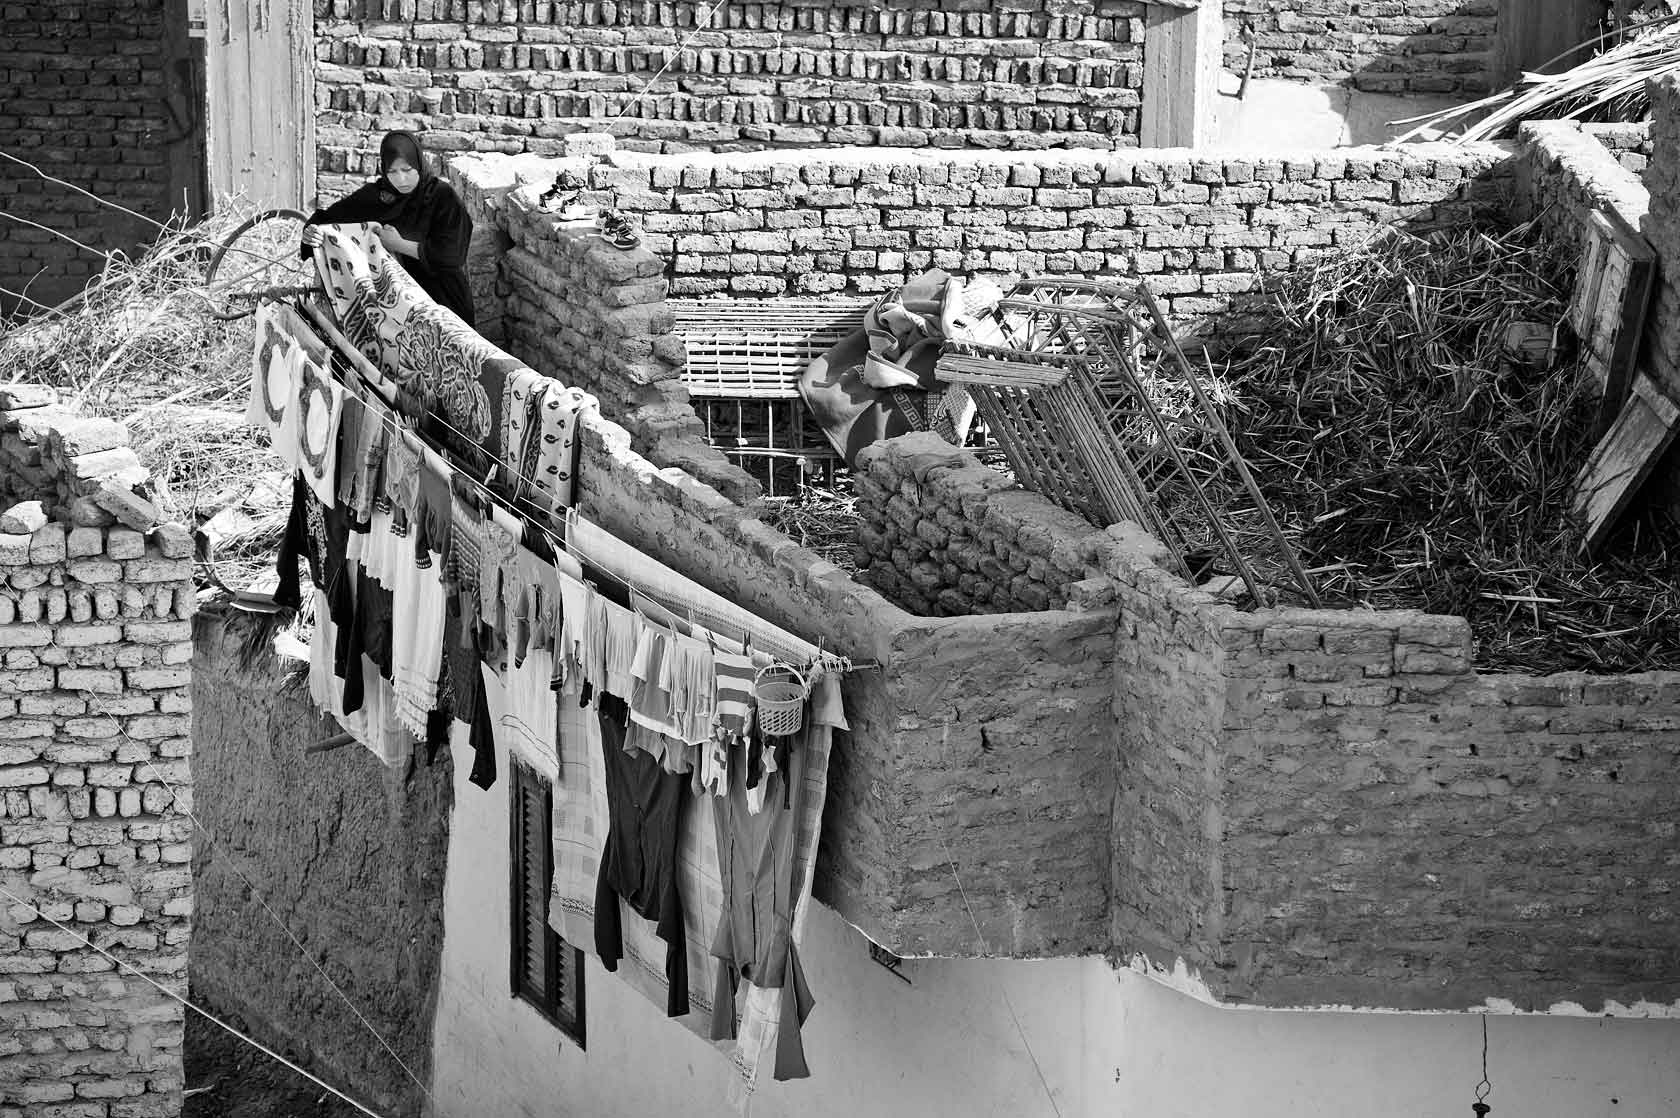 090100_DSC3294-Laundry-day-in-Luxor.jpg